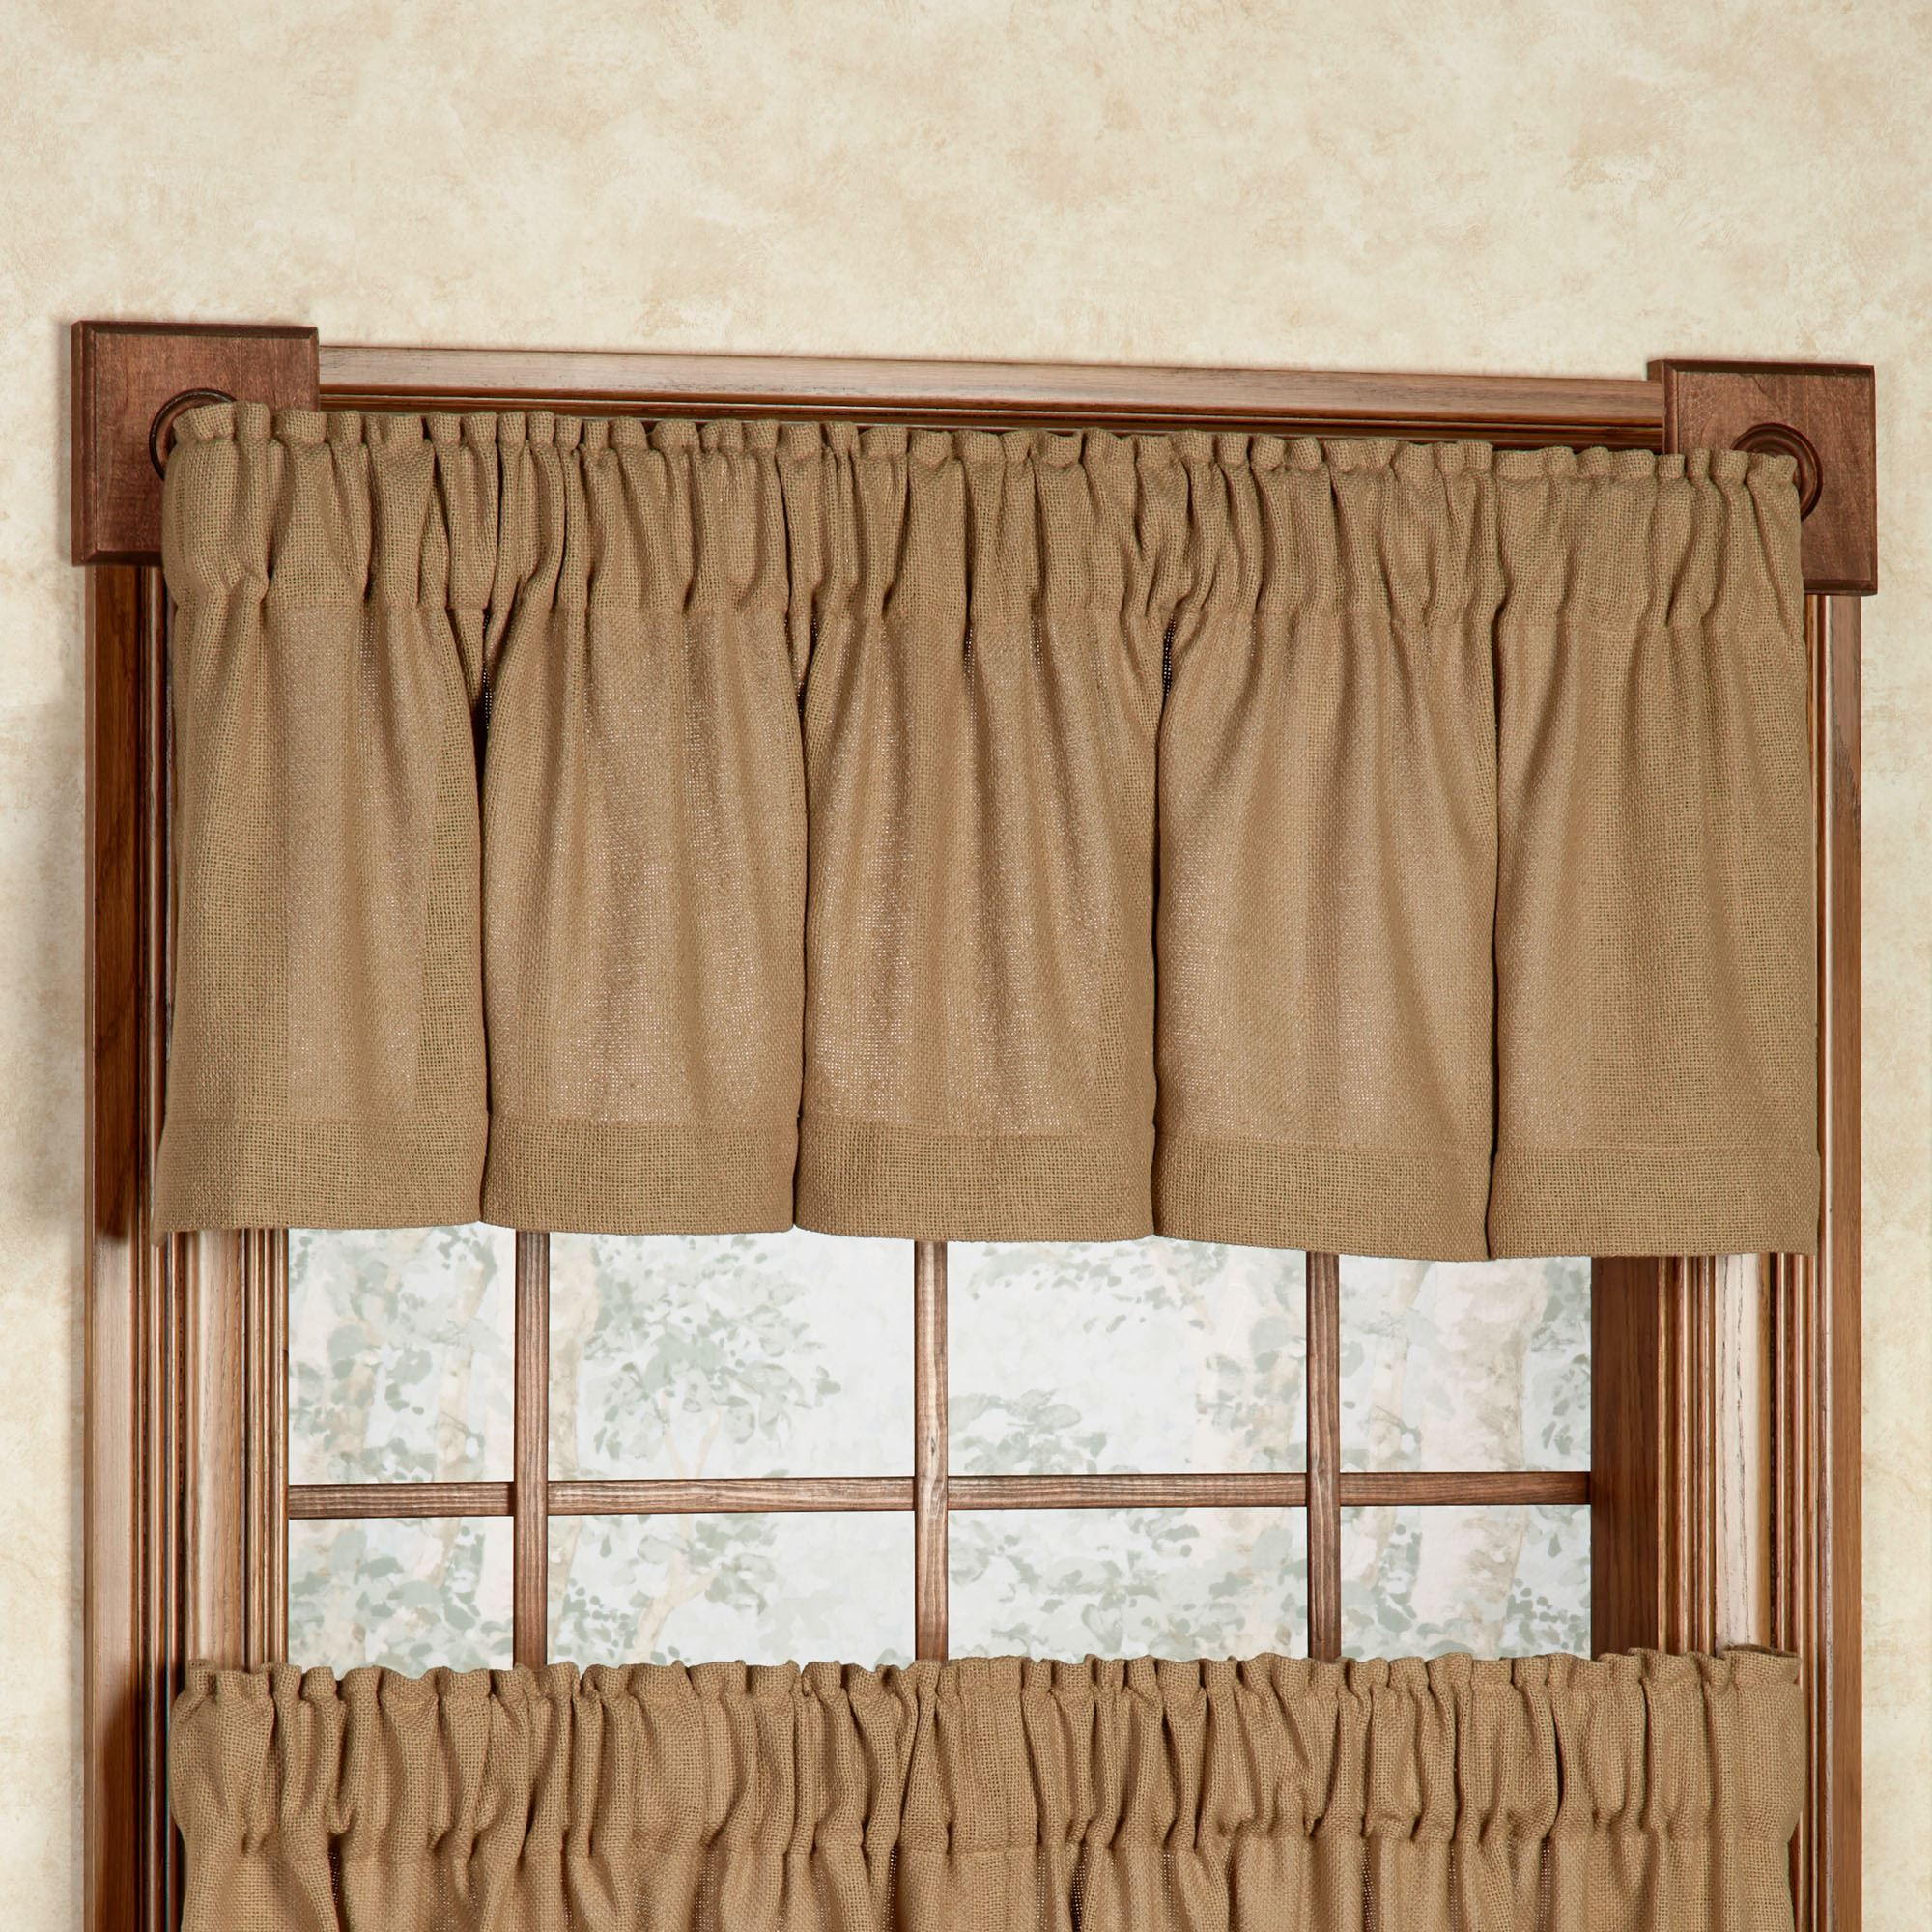 fabric window treatments inexpensive burlap tailored valance natural 72 16 soft cotton window treatment